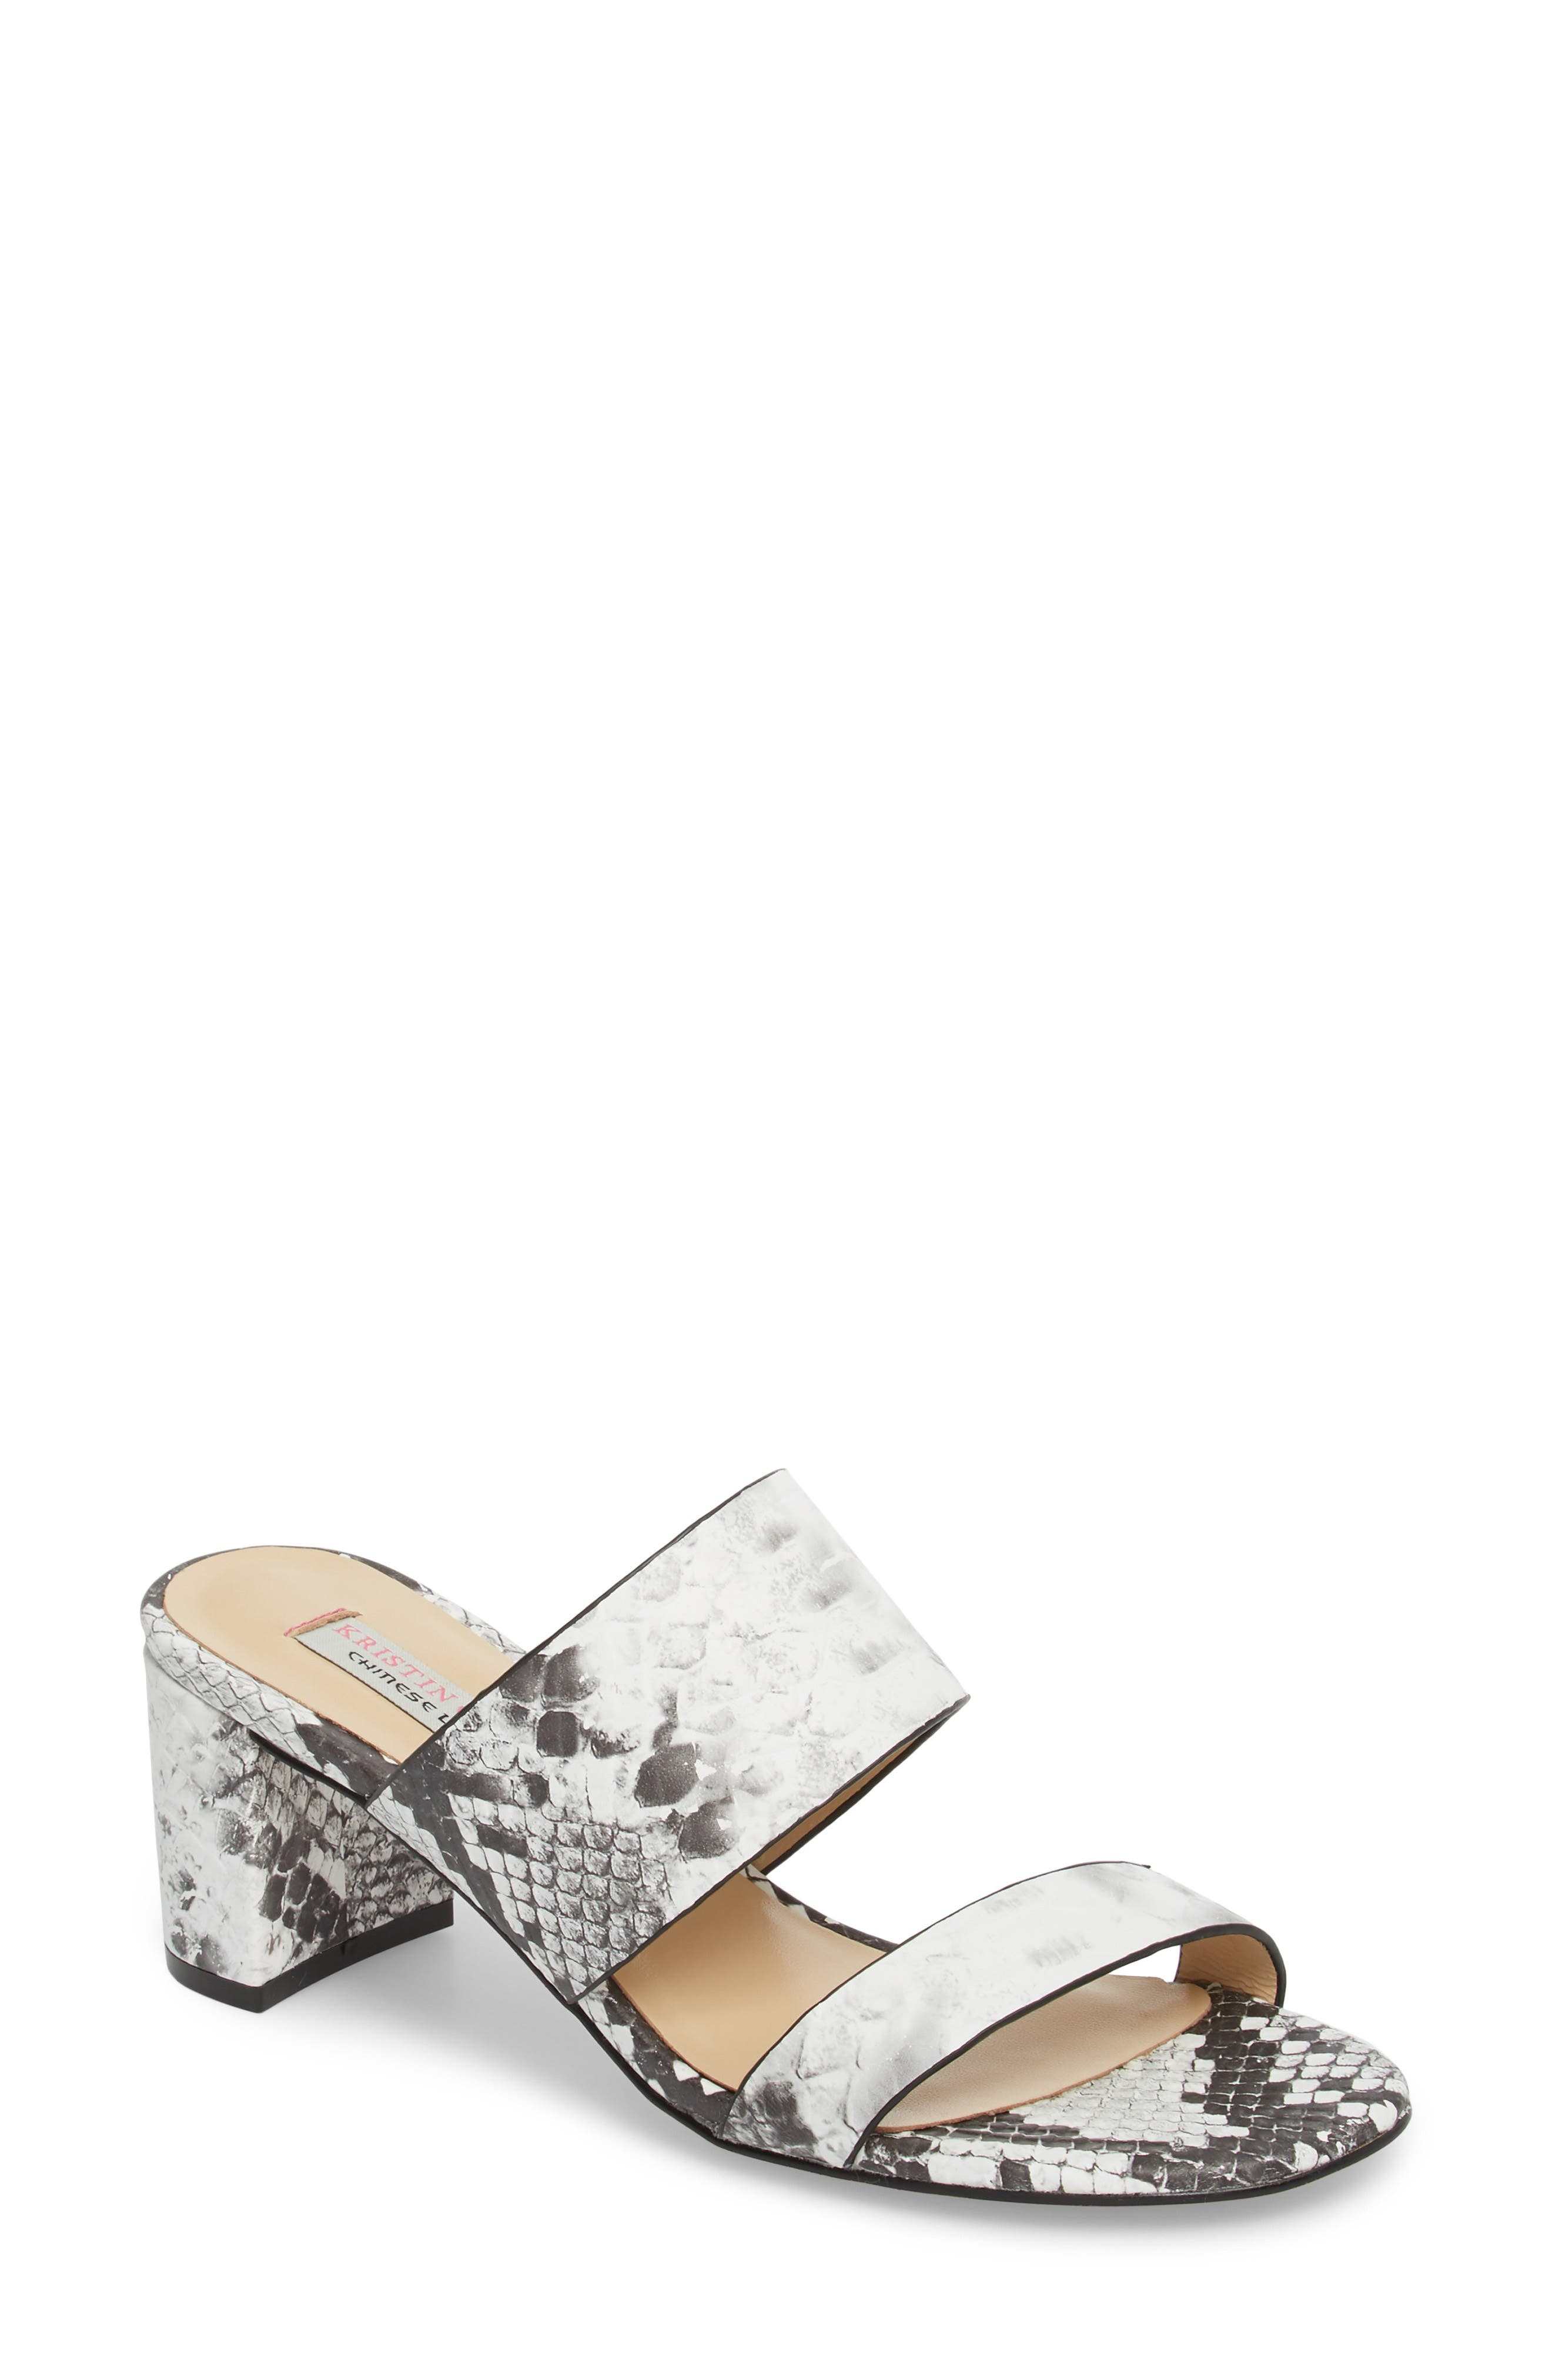 Lakeview Sandal,                             Main thumbnail 1, color,                             GREY/ WHITE PRINT LEATHER